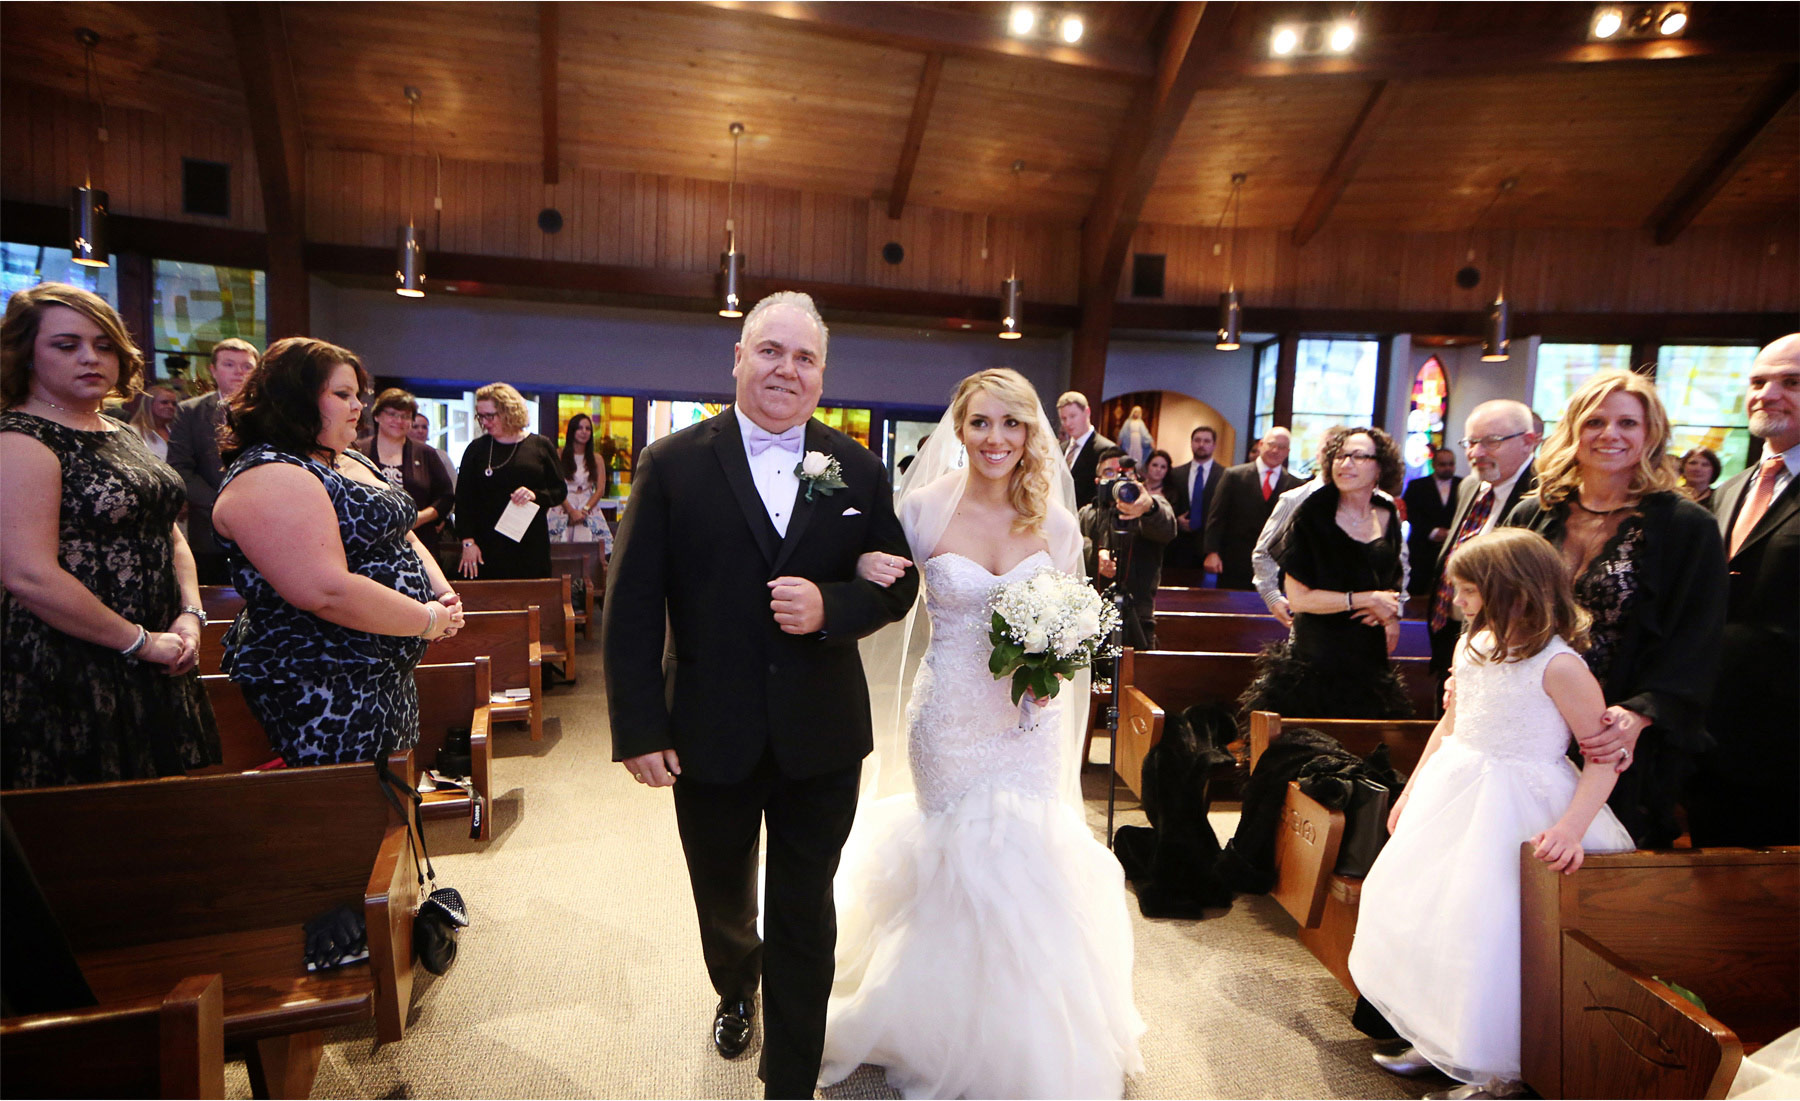 15-Watchung-New-Jersey-Wedding-Photographer-by-Andrew-Vick-Photography-Winter-Saint-Marys-Chuch-Stony-Hill-Ceremony-Bride-Father-Parents-Processional-Alexia-and-Justin.jpg